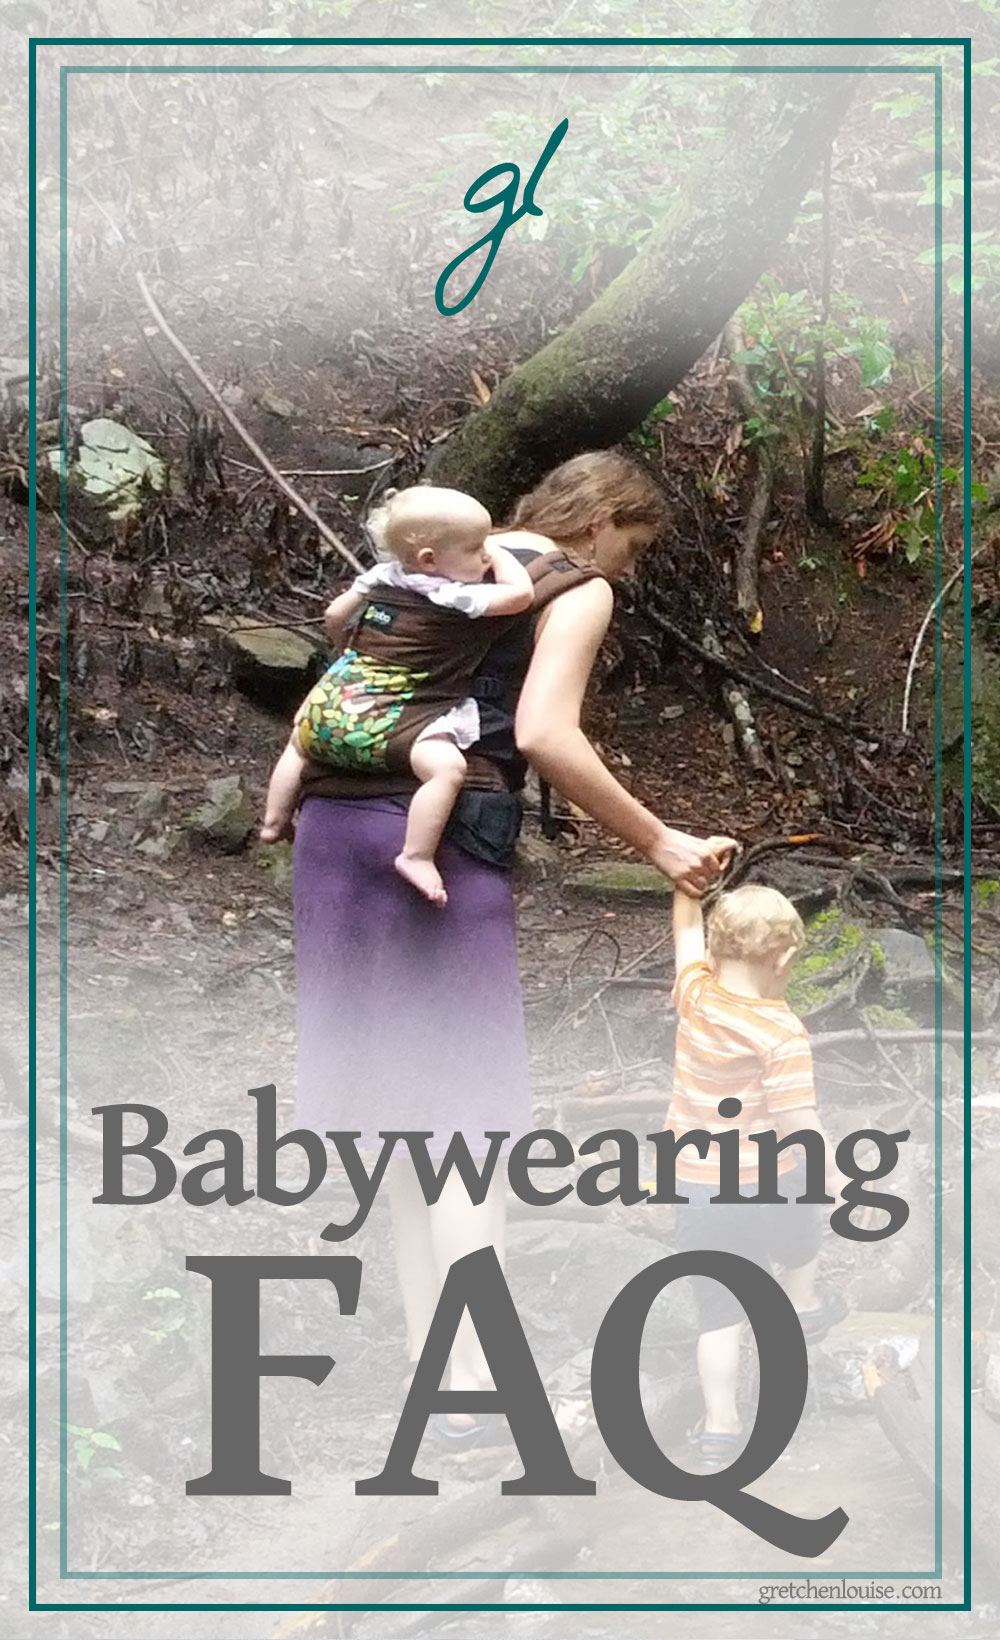 Answers to Frequently Asked Questions About Babywearing via @GretLouise